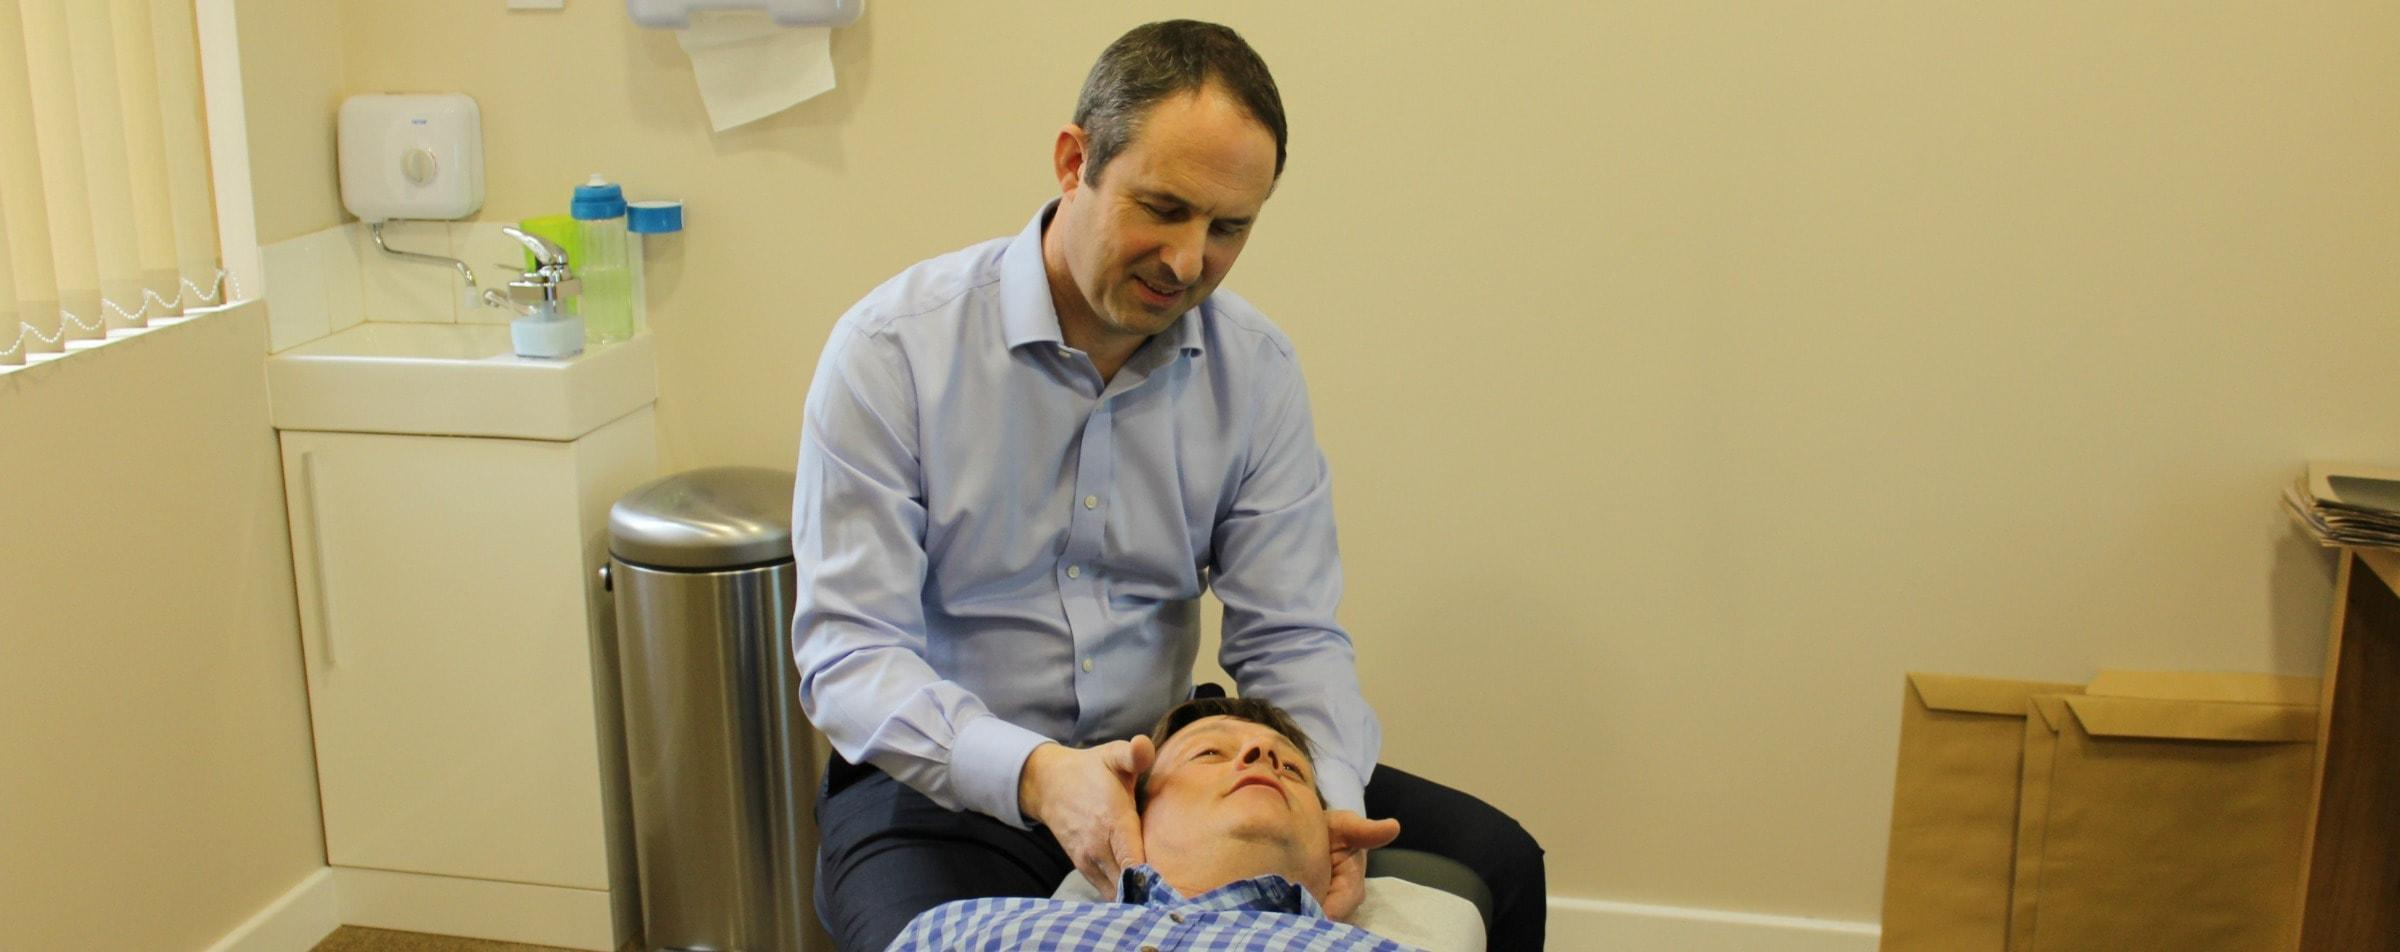 ben chiropractor in birmingham with patient